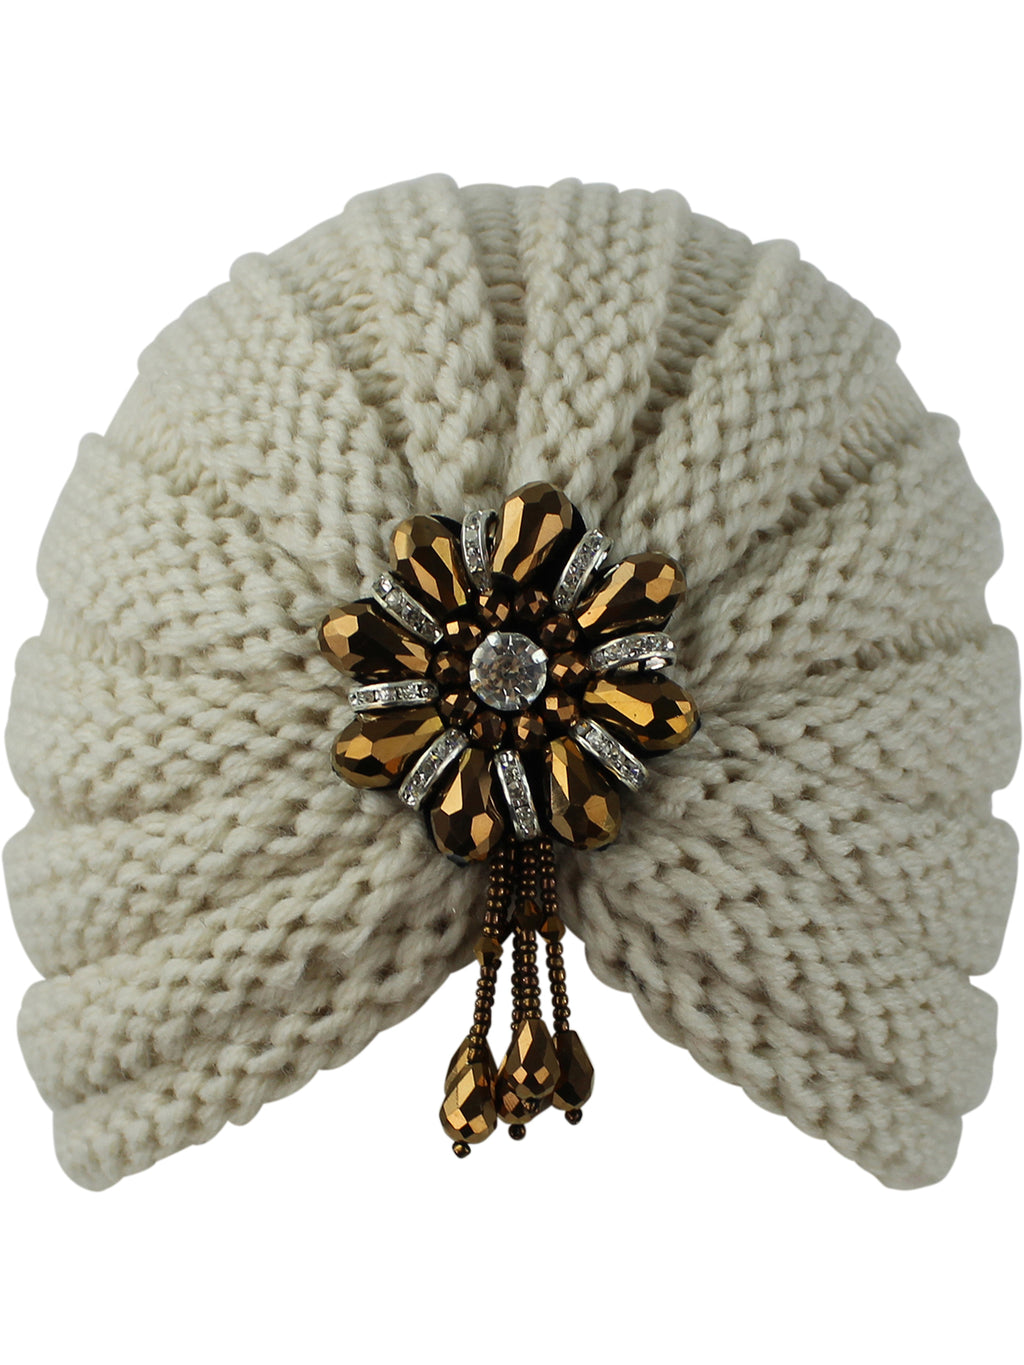 Beige Knit Beaded Turban Head Wrap